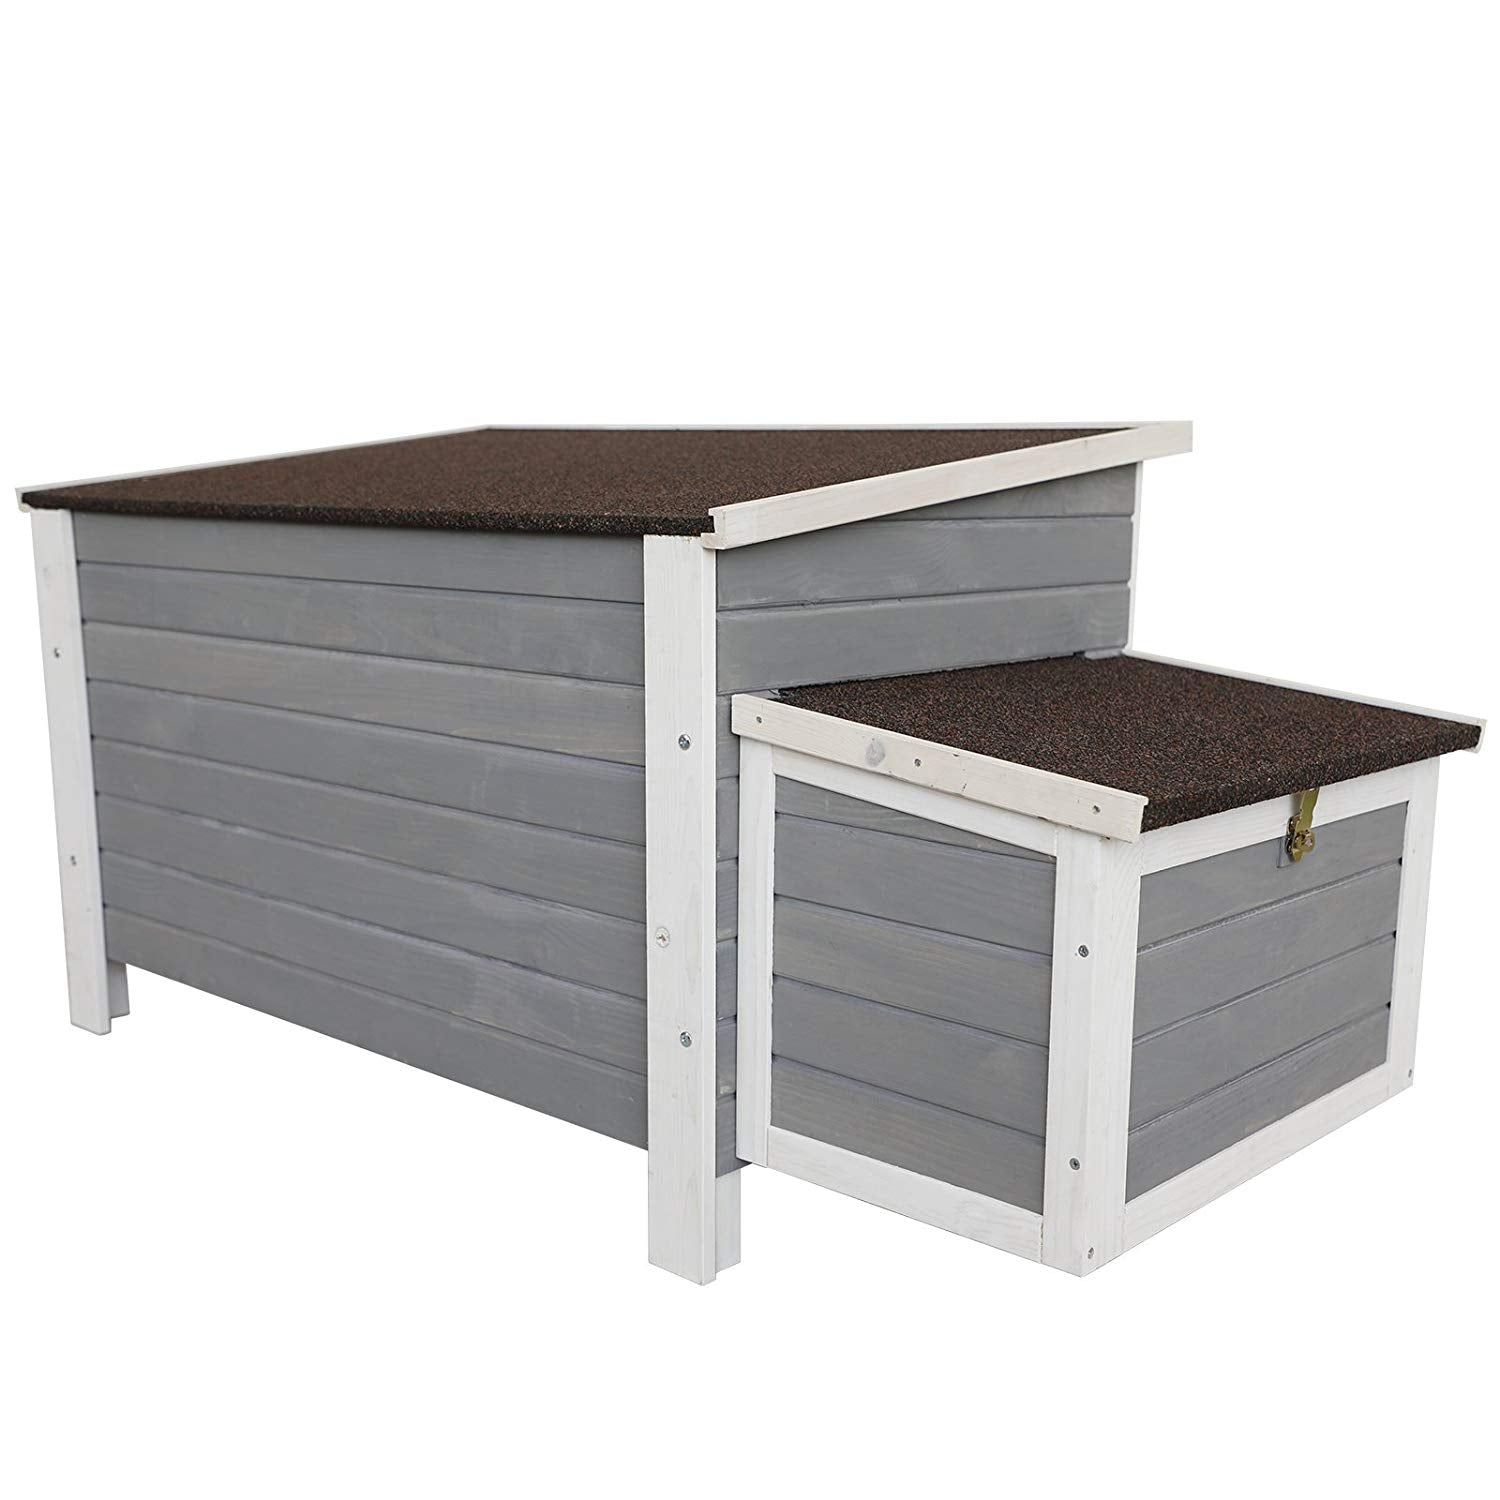 Petsfit Weatherproof Outdoor Chicken Coop with Nesting Box, Bottom Can be Removed for Easy Cleaning